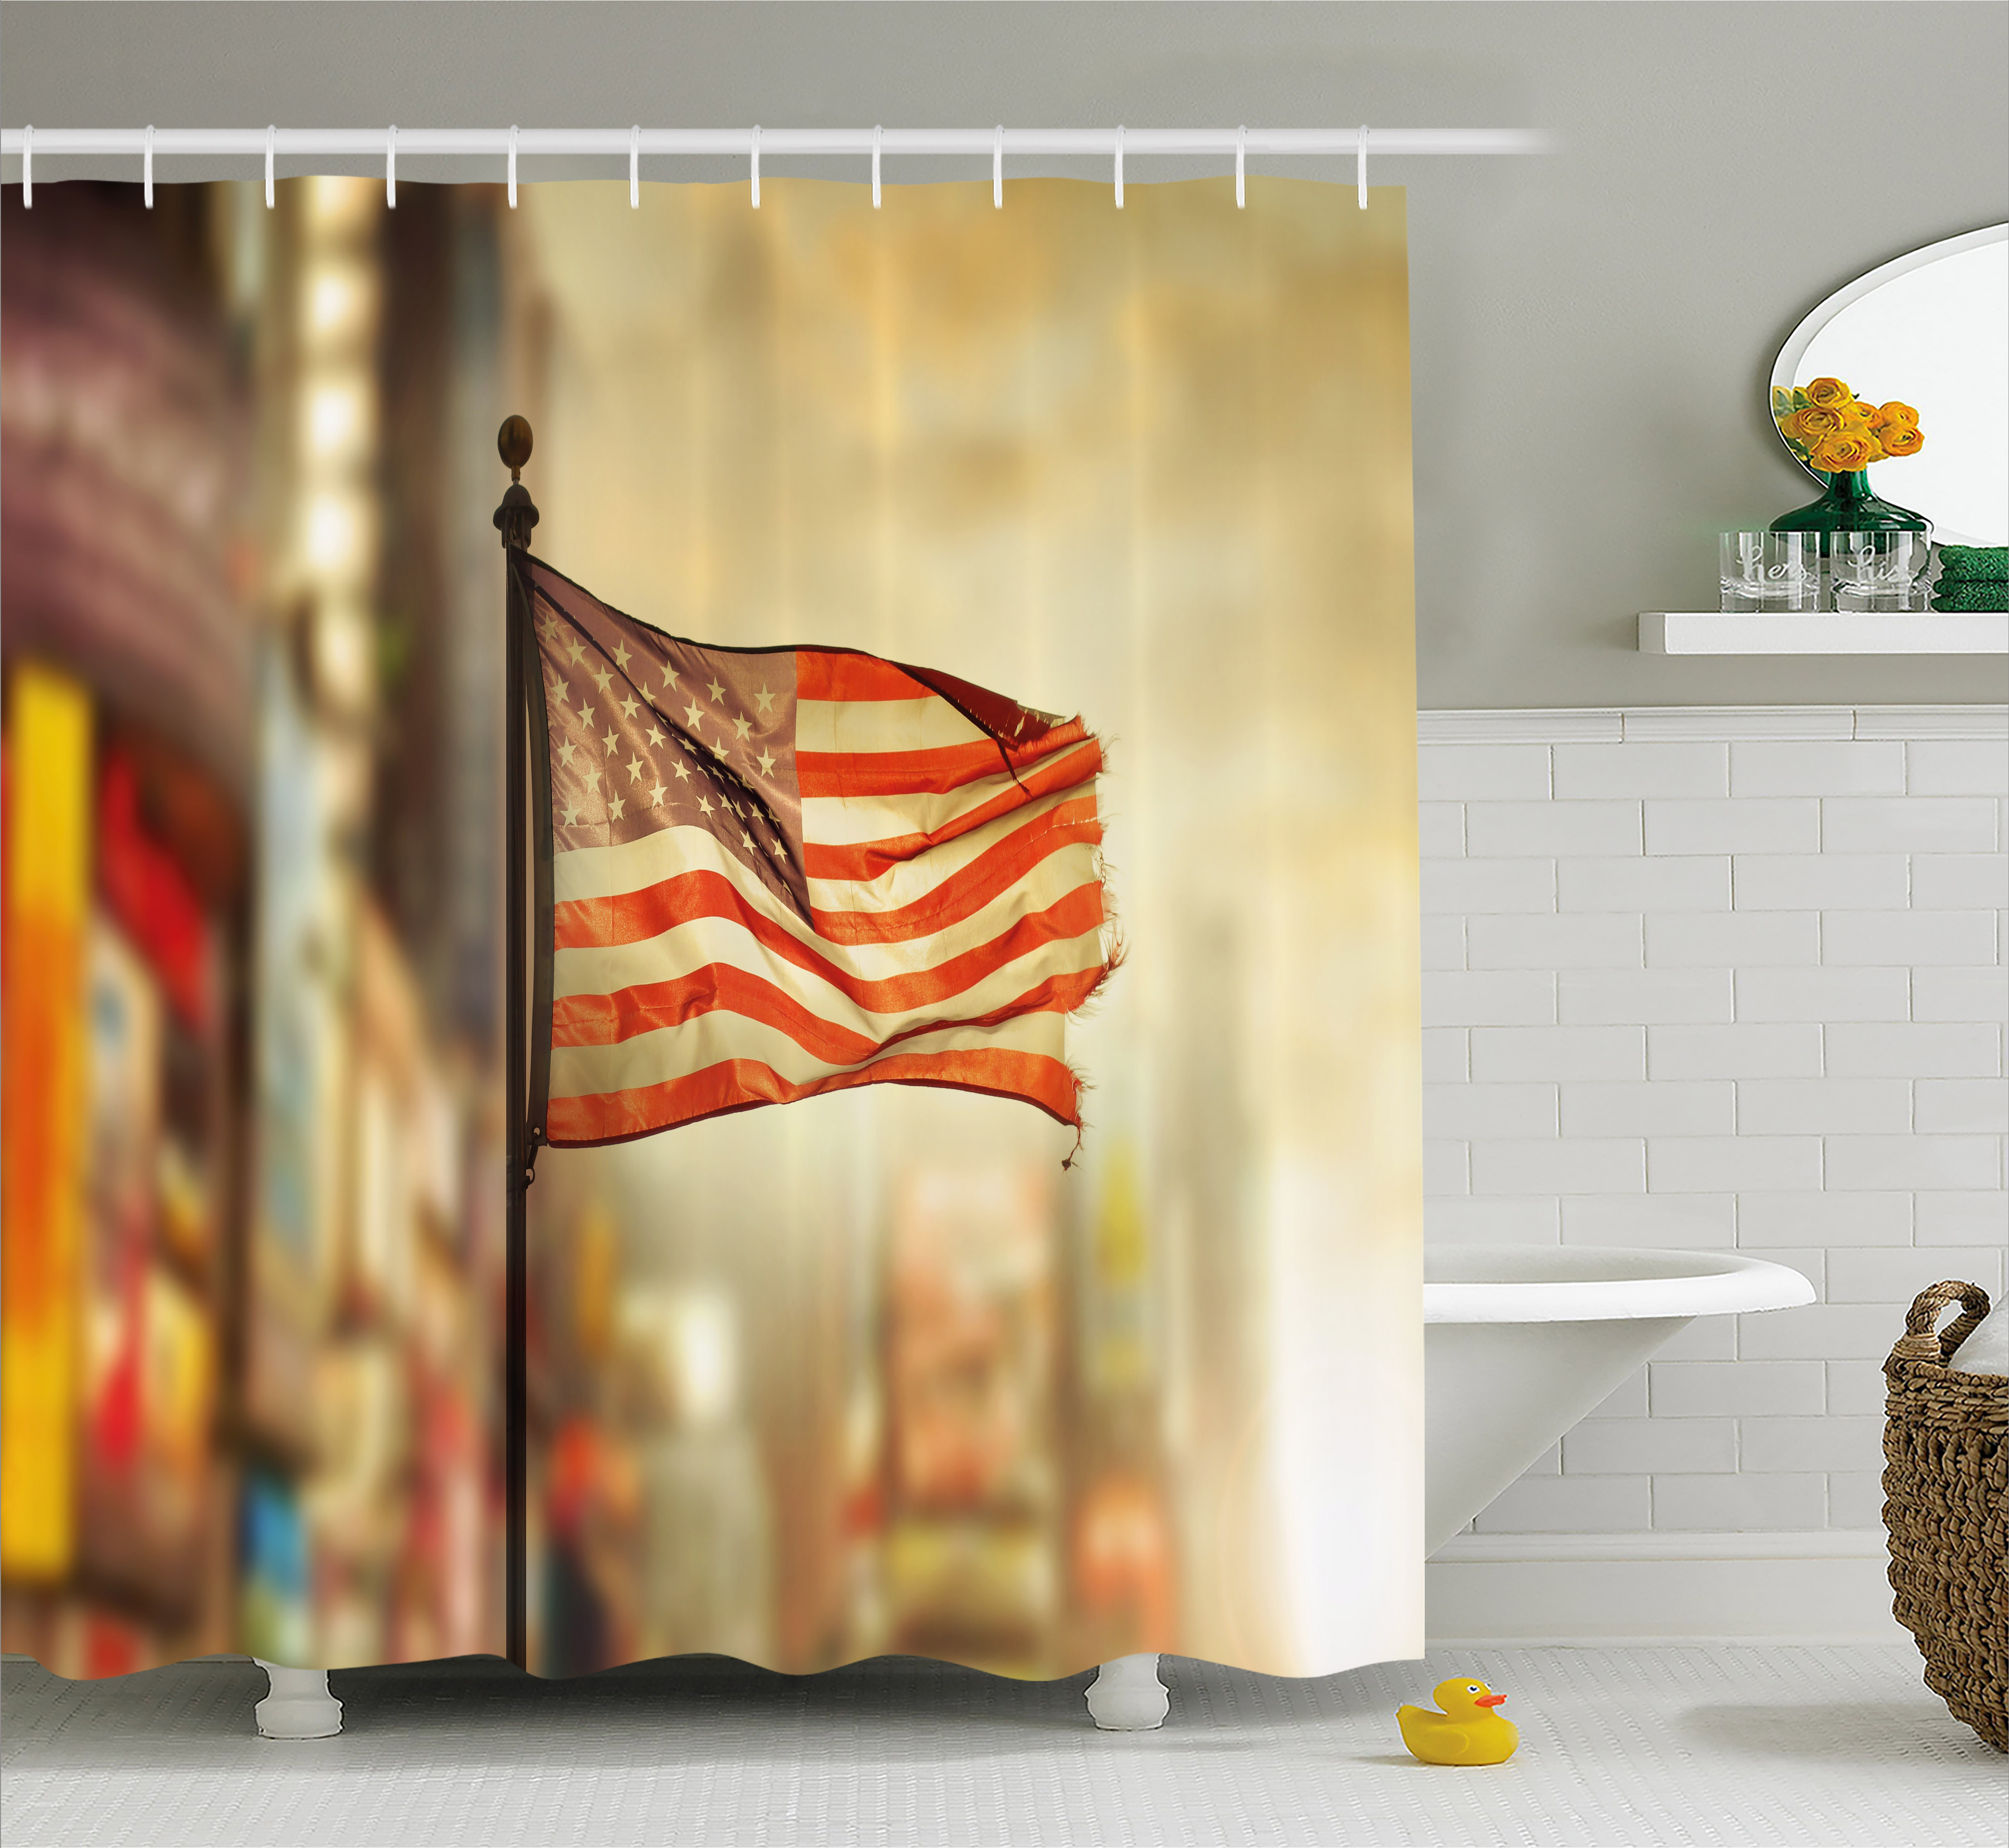 United States Shower Curtain, American Flag Waving in City National Independence Day Celebration Theme, Fabric Bathroom Set with Hooks, 69W X 75L Inches Long, Sepia Red Blue, by Ambesonne